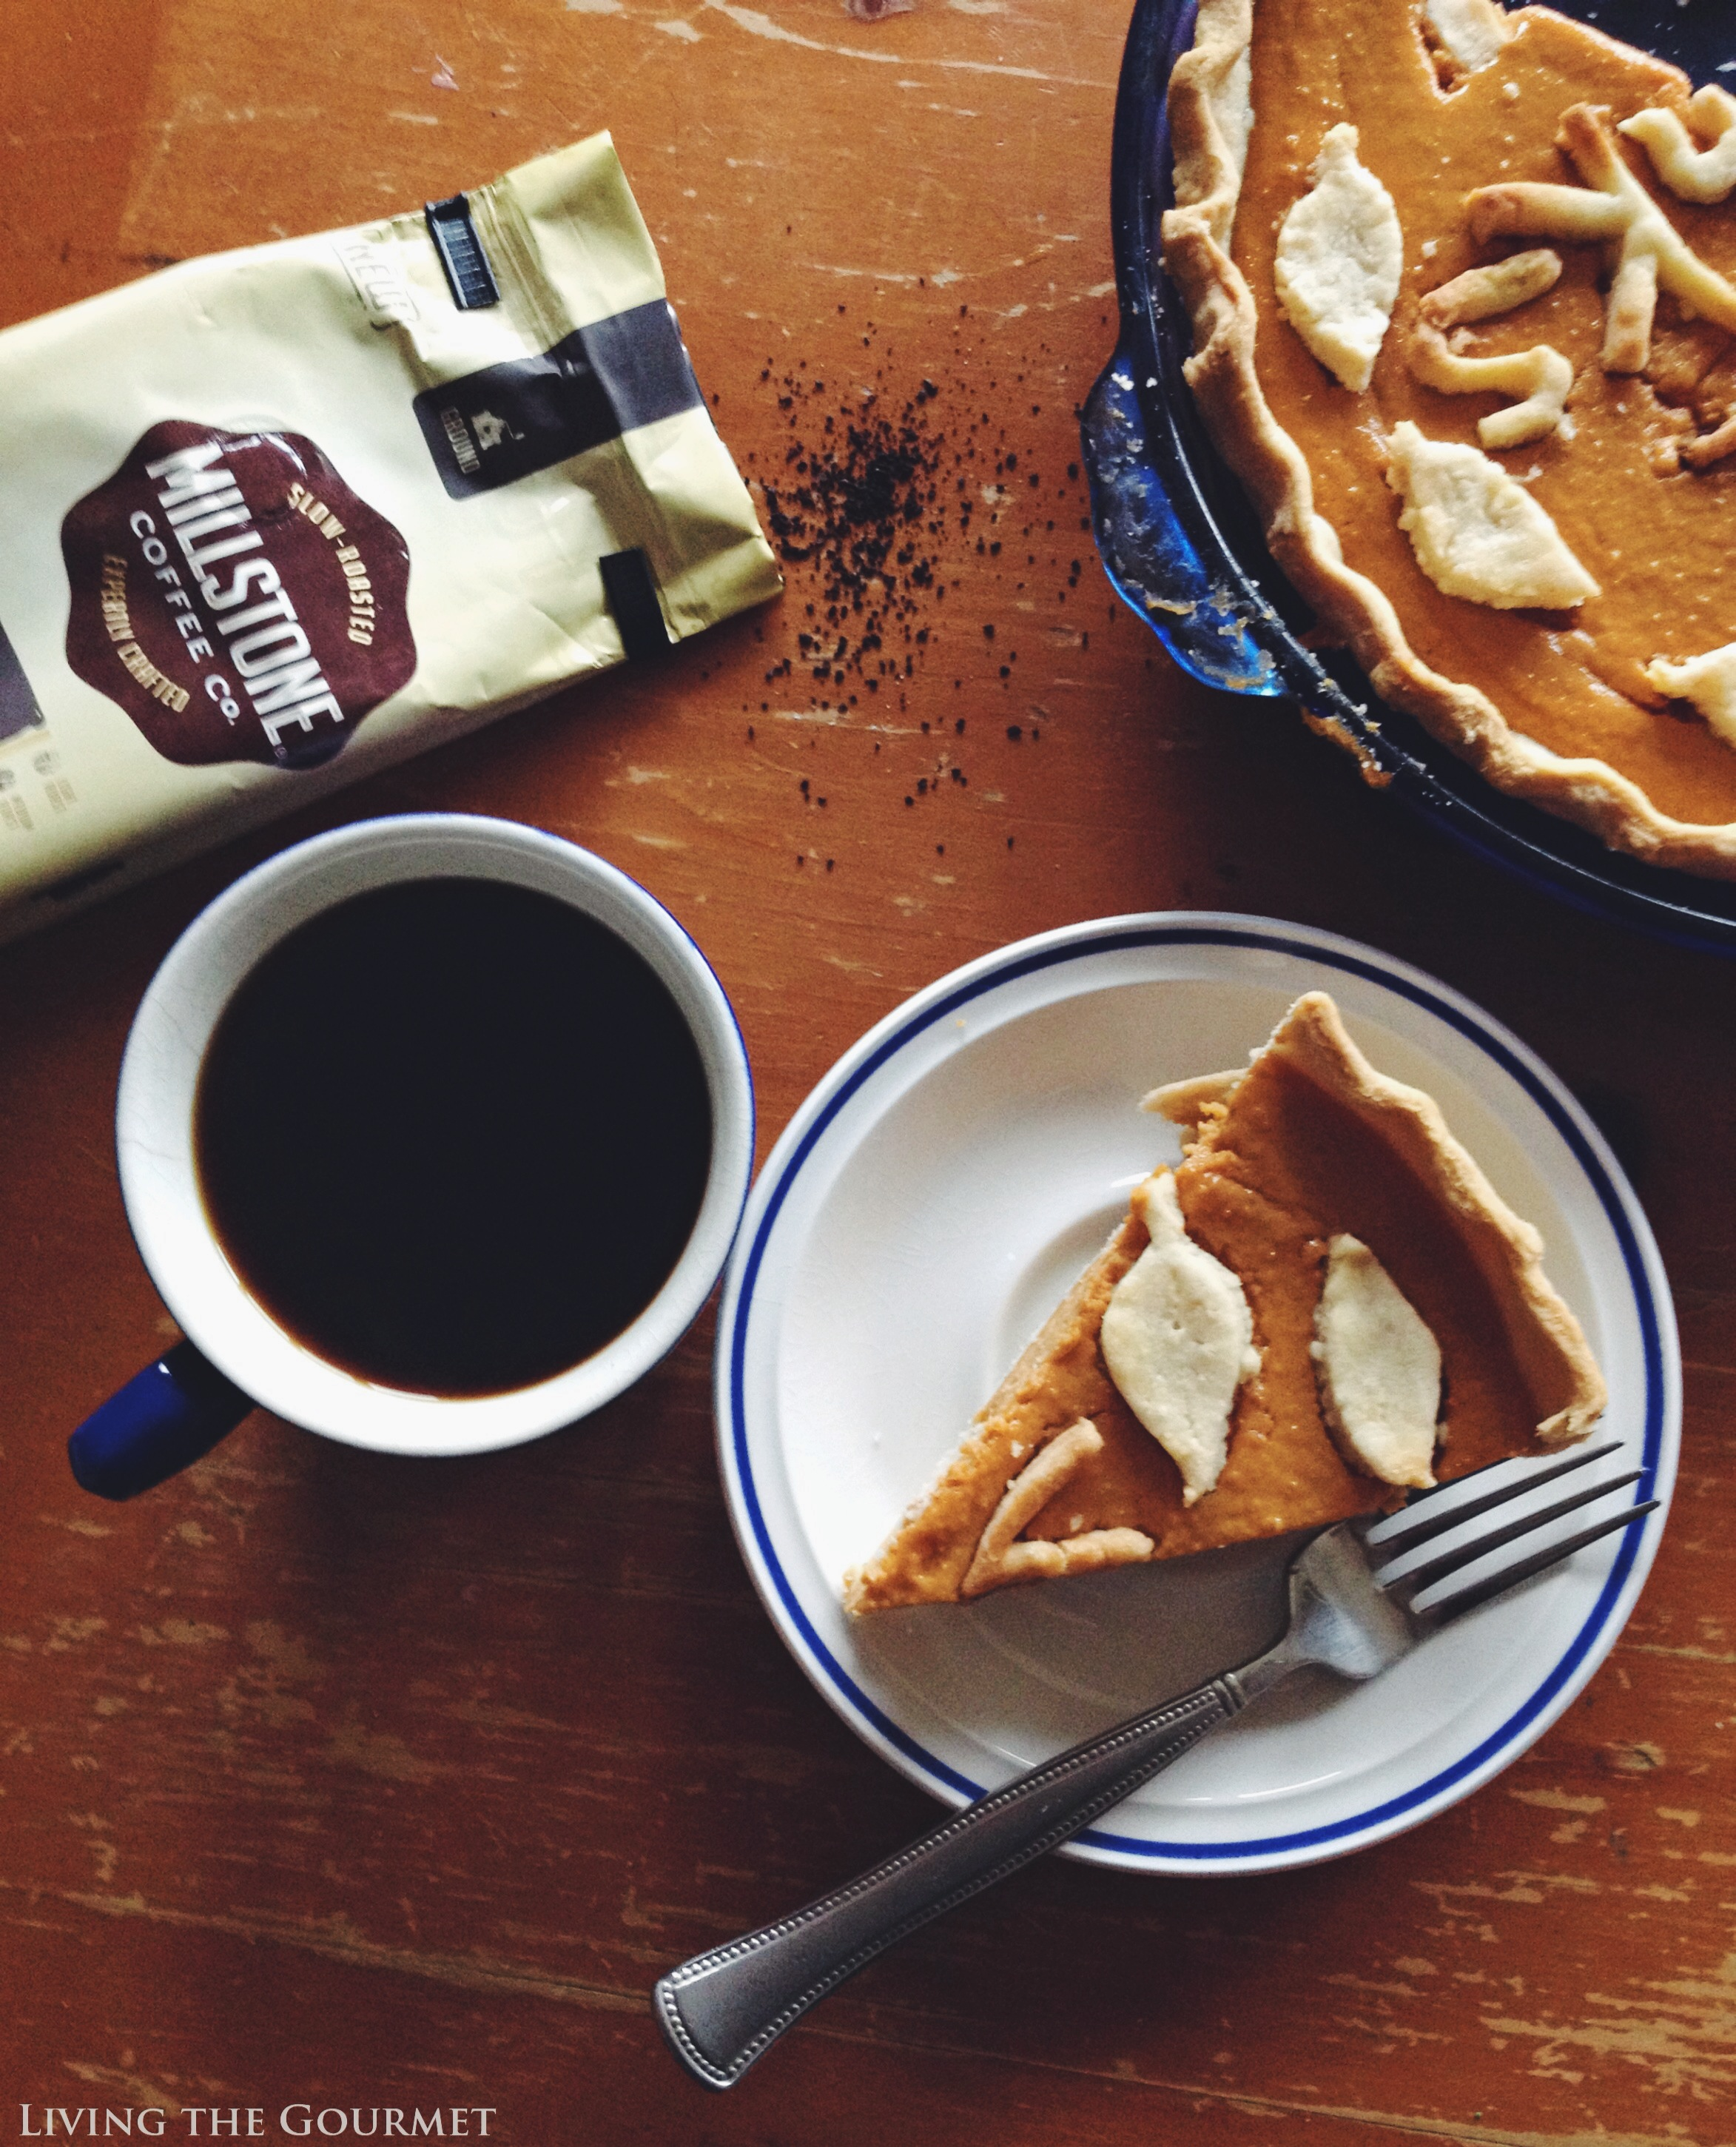 Living the Gourmet: Sweet Potato Rum Pie